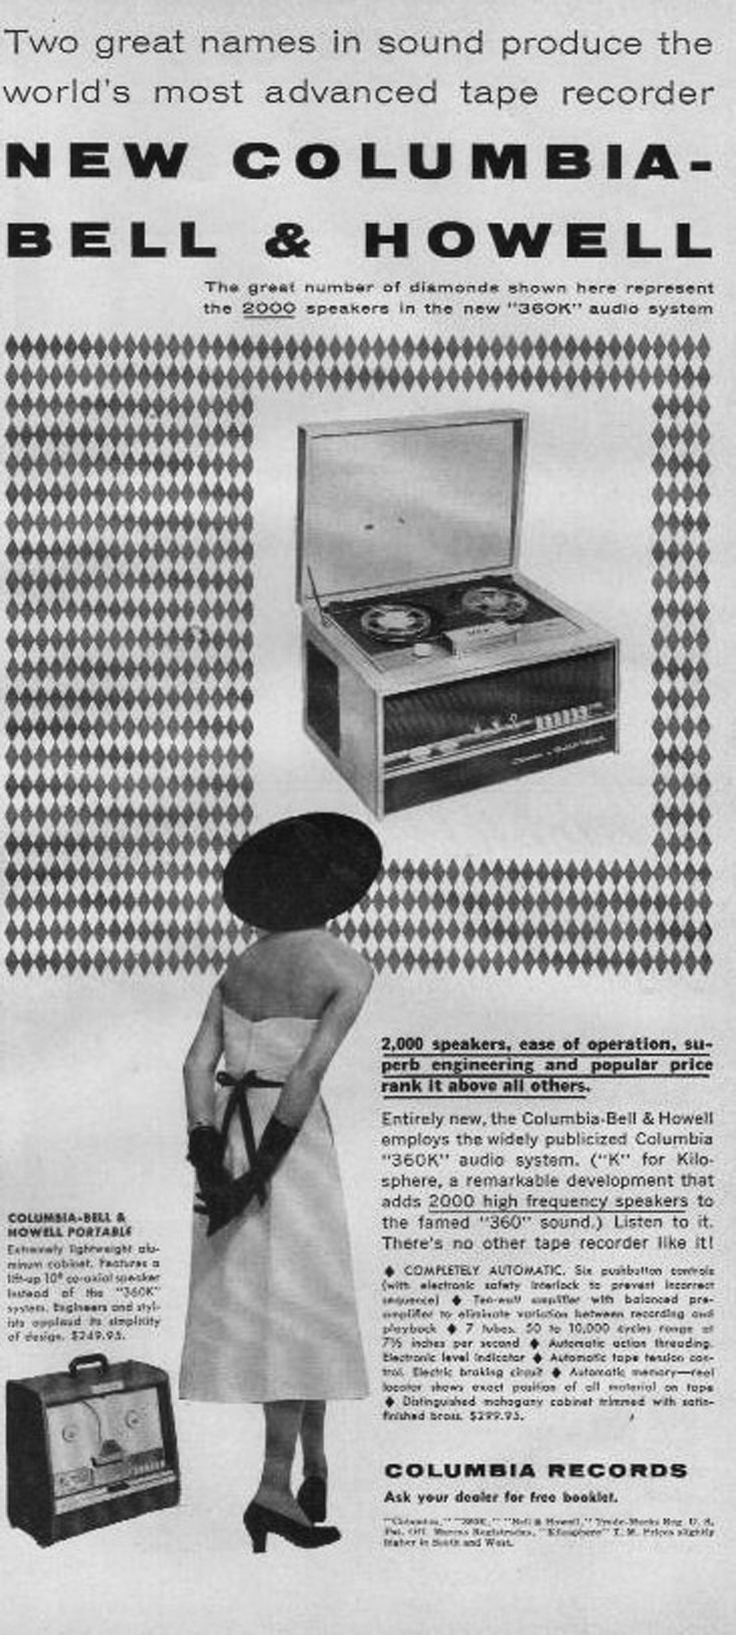 1954 ad for Bell & Howell reel tape recorder in Reel2ReelTexas.com's vintage recording collection